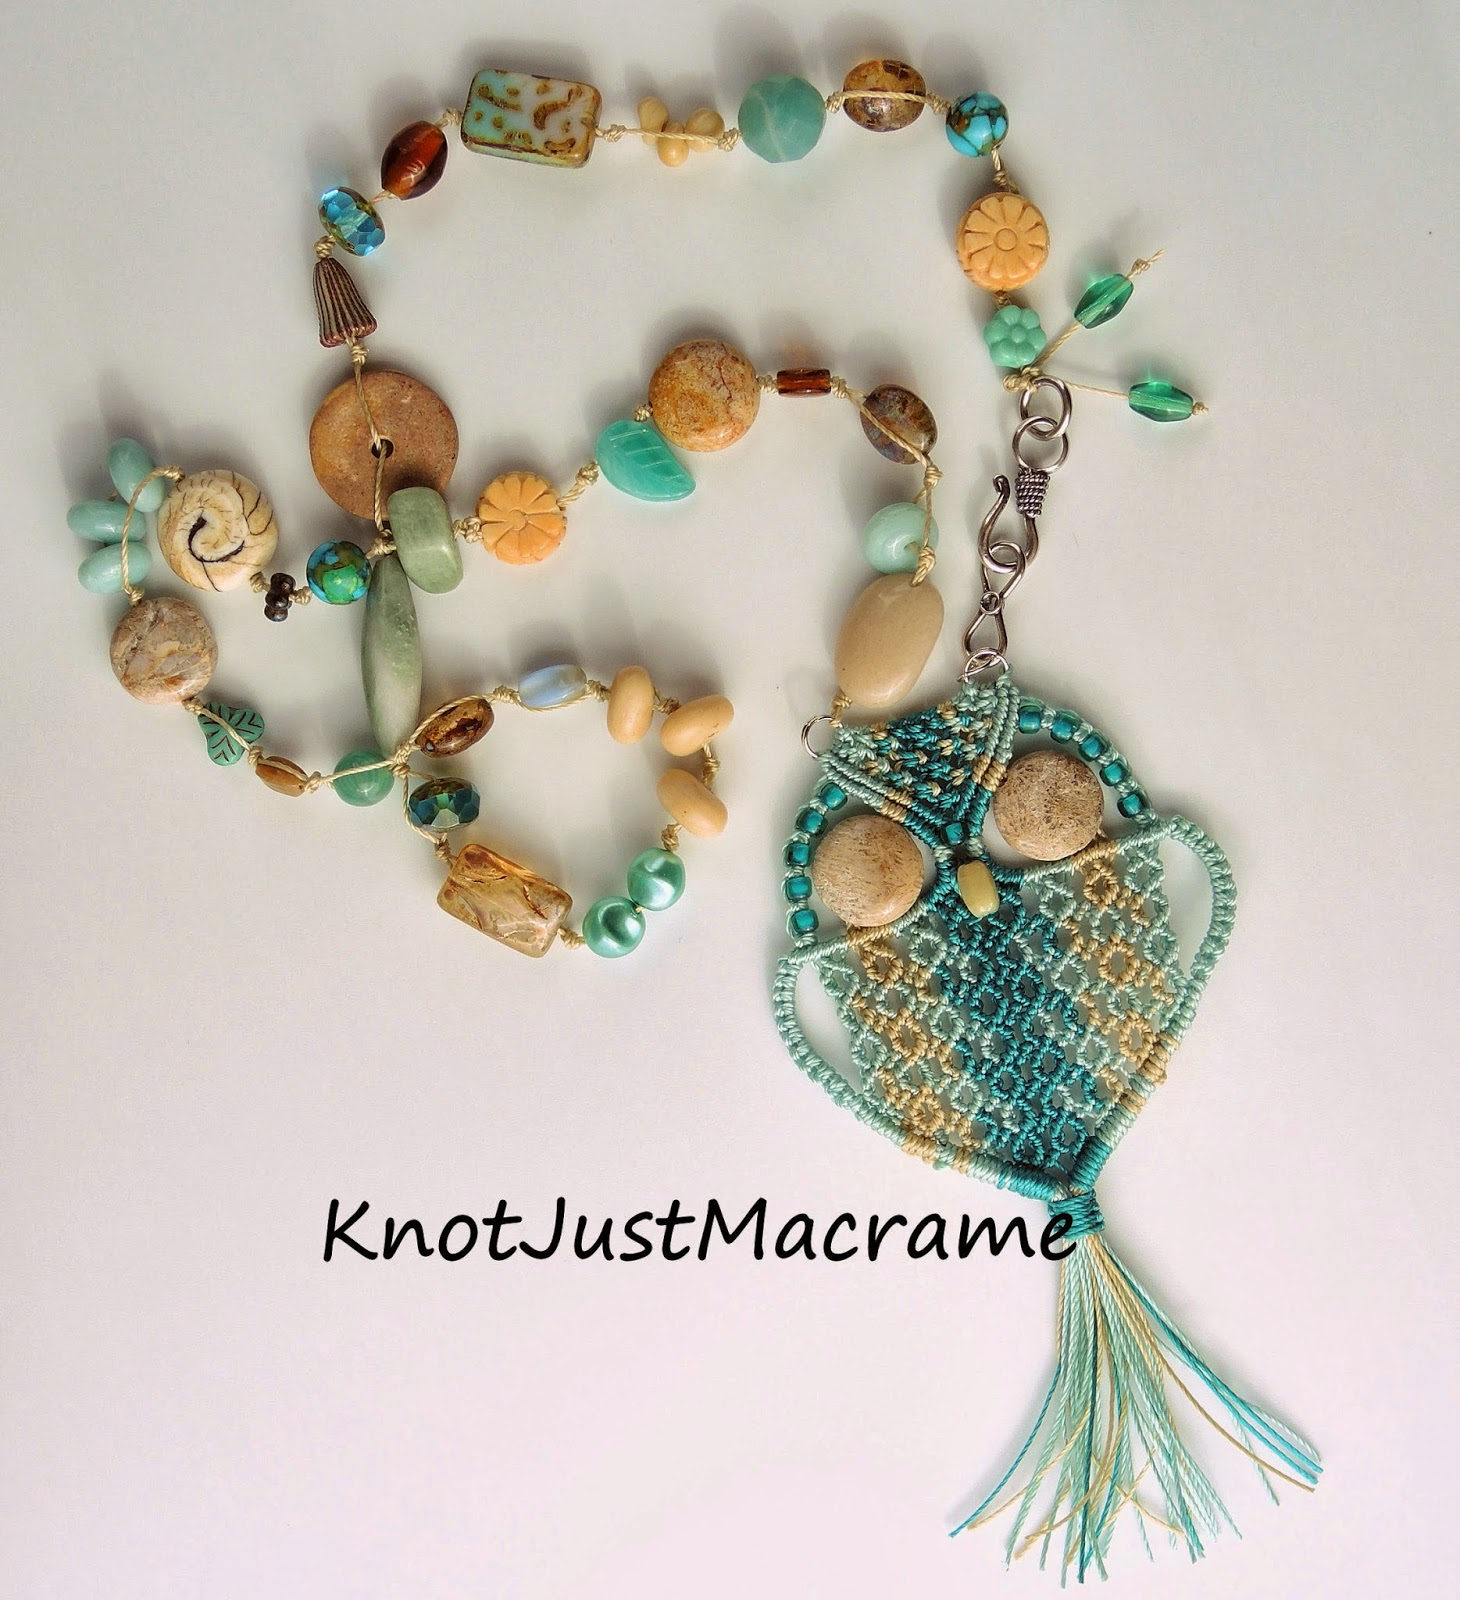 Micro macrame owl necklace with eclectic beads